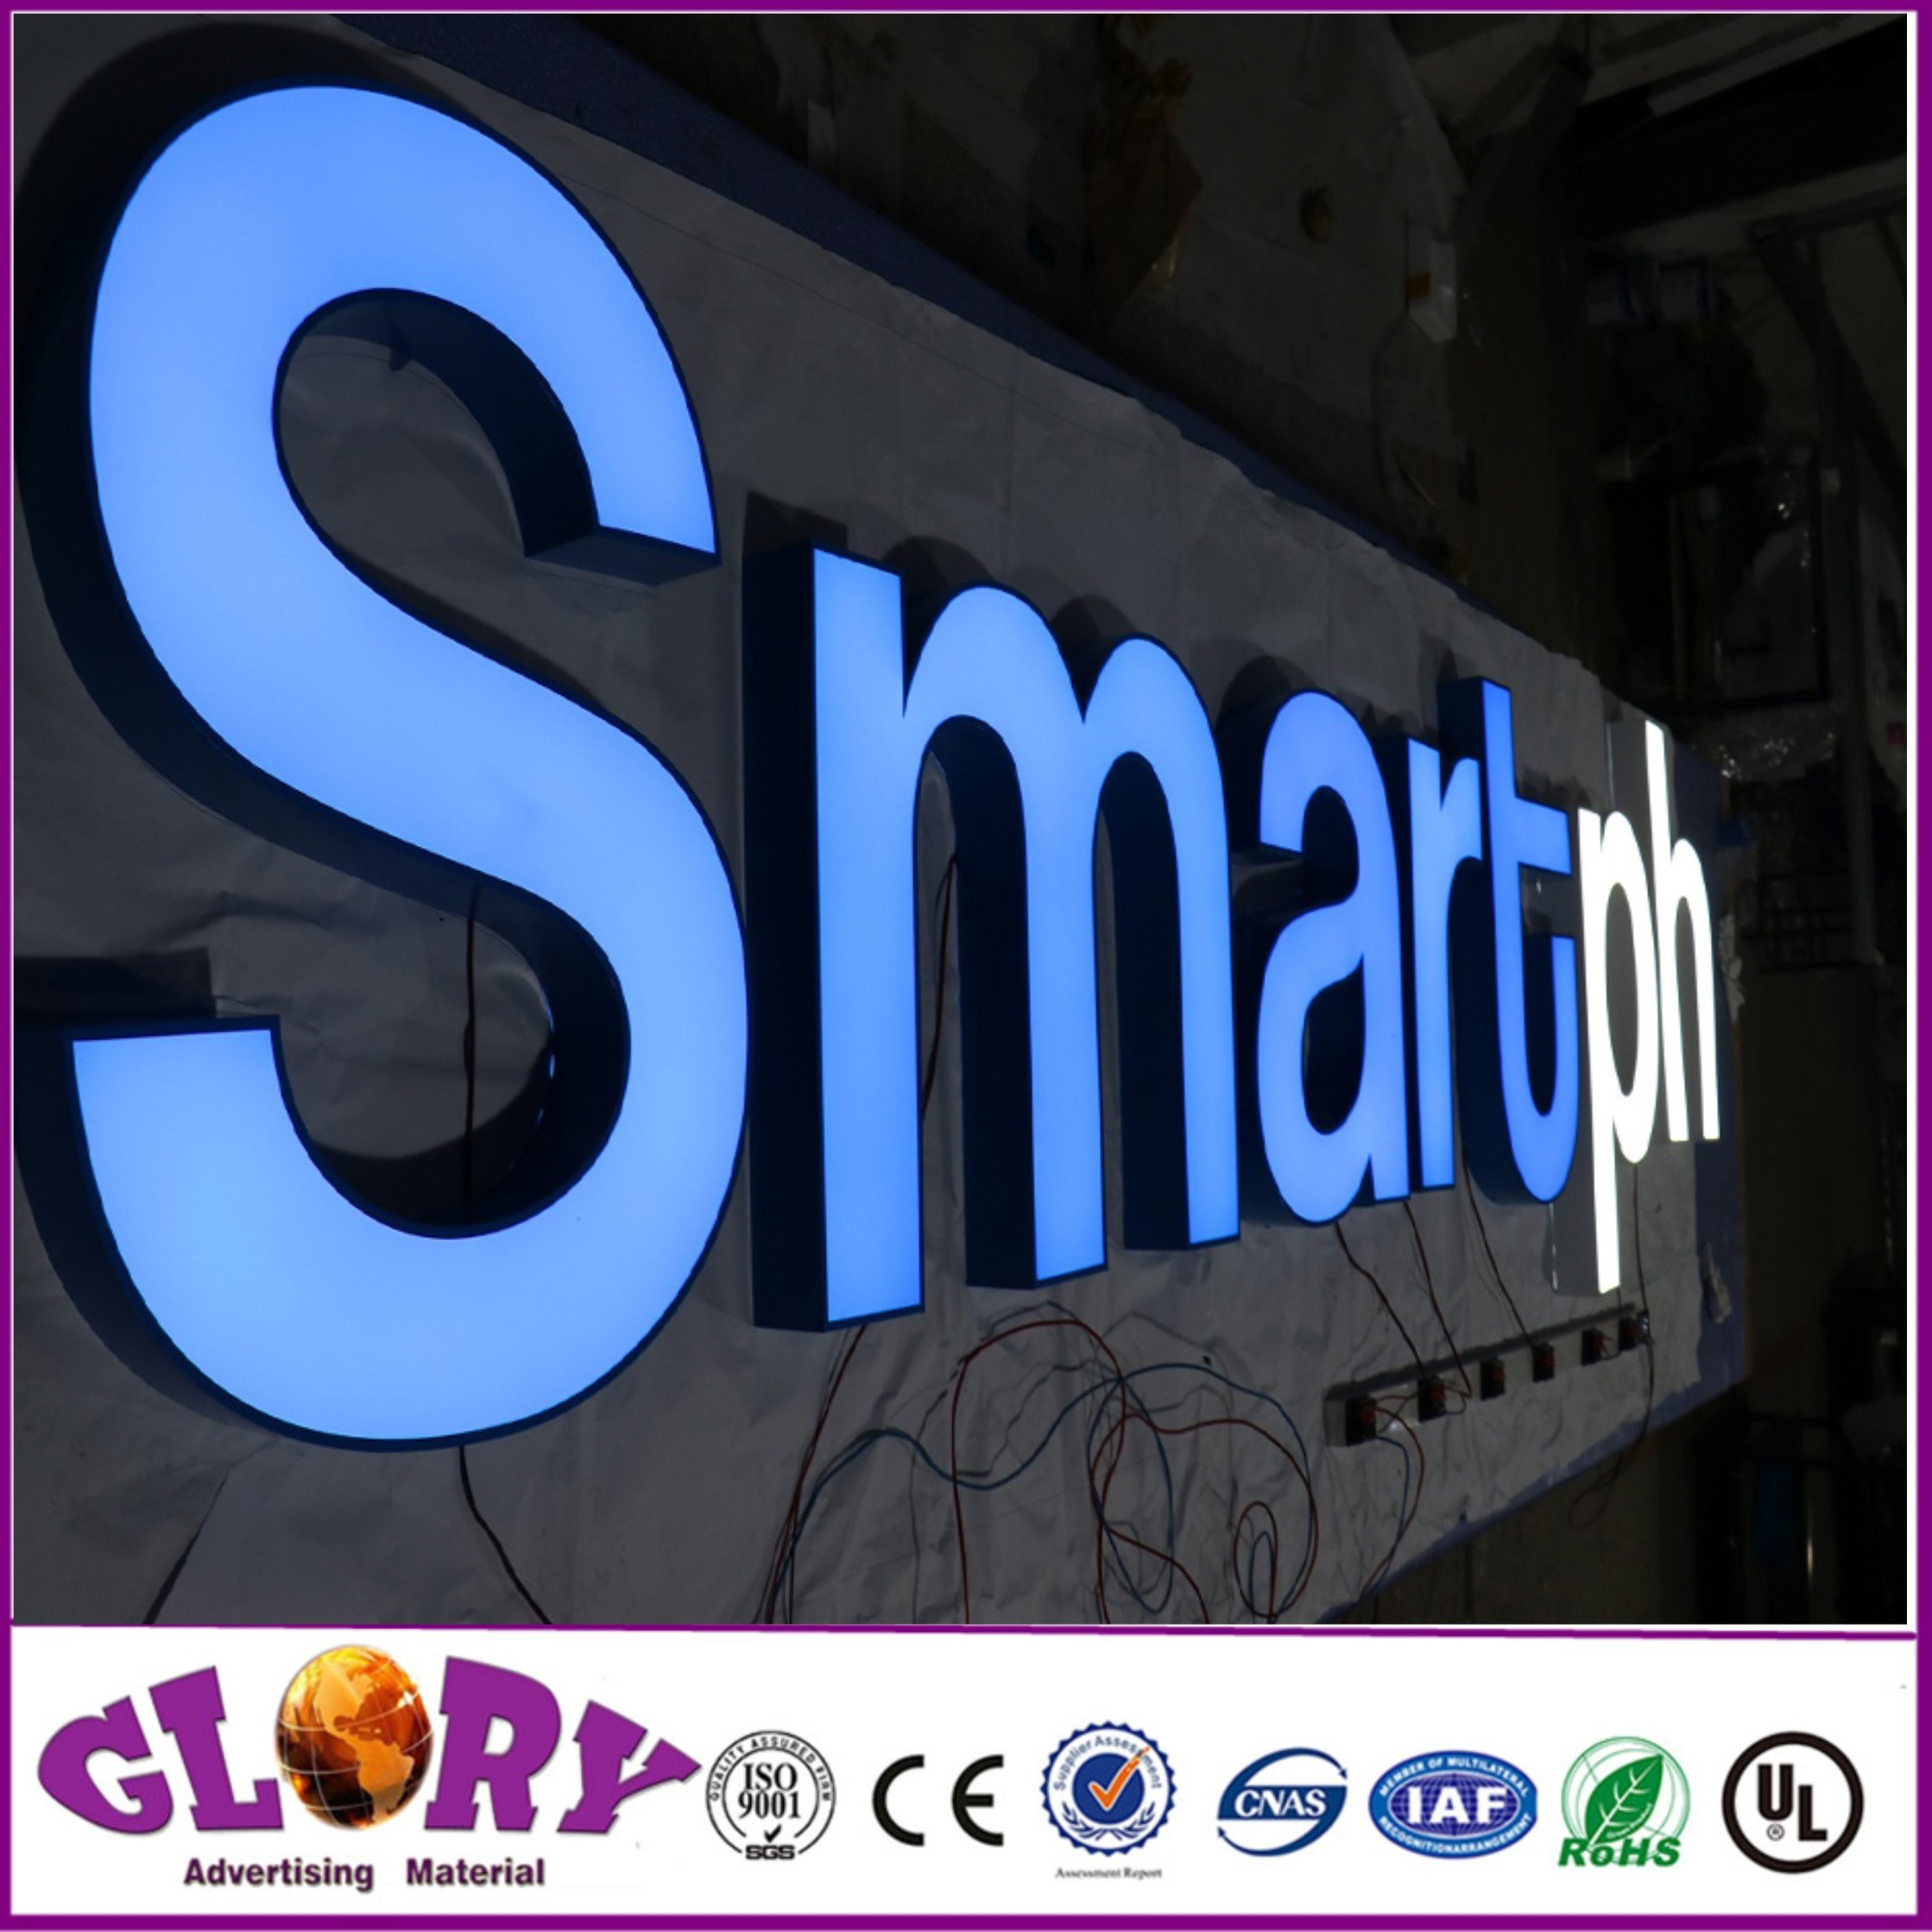 Brushed Ss Channel Letter Signboard and LED Sign